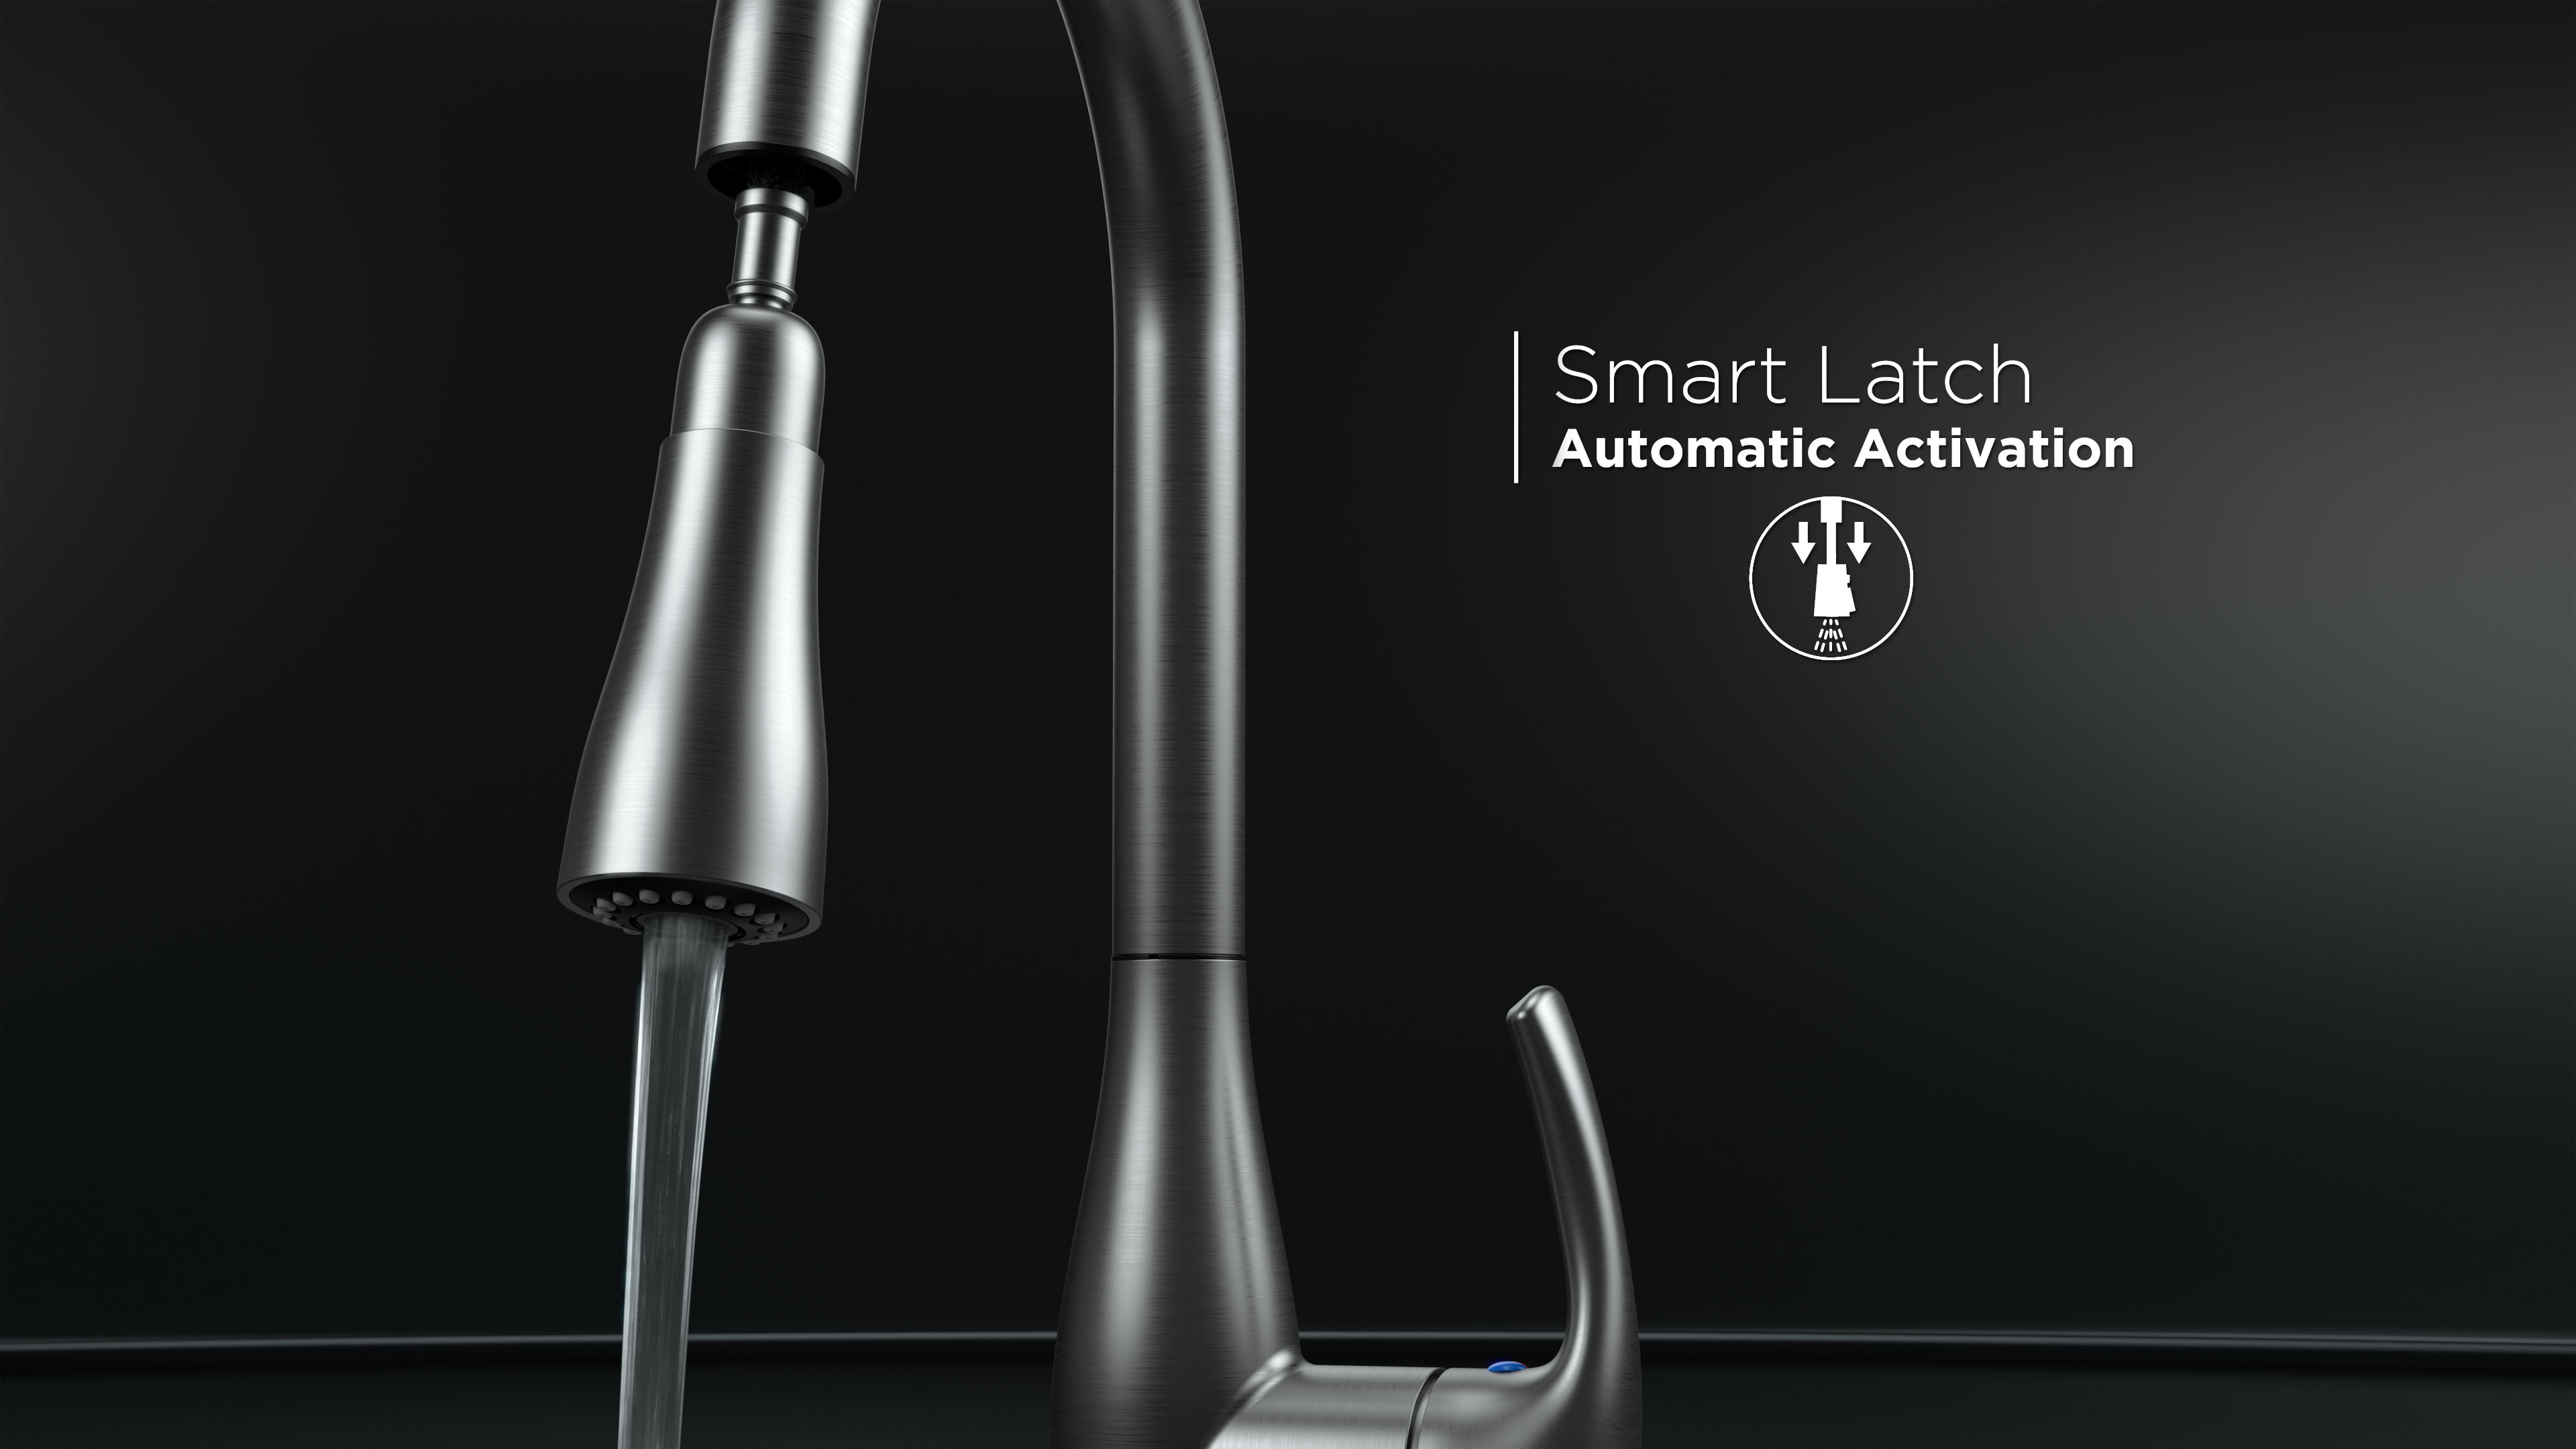 Flow faucet 3D rendering with smart latch feature